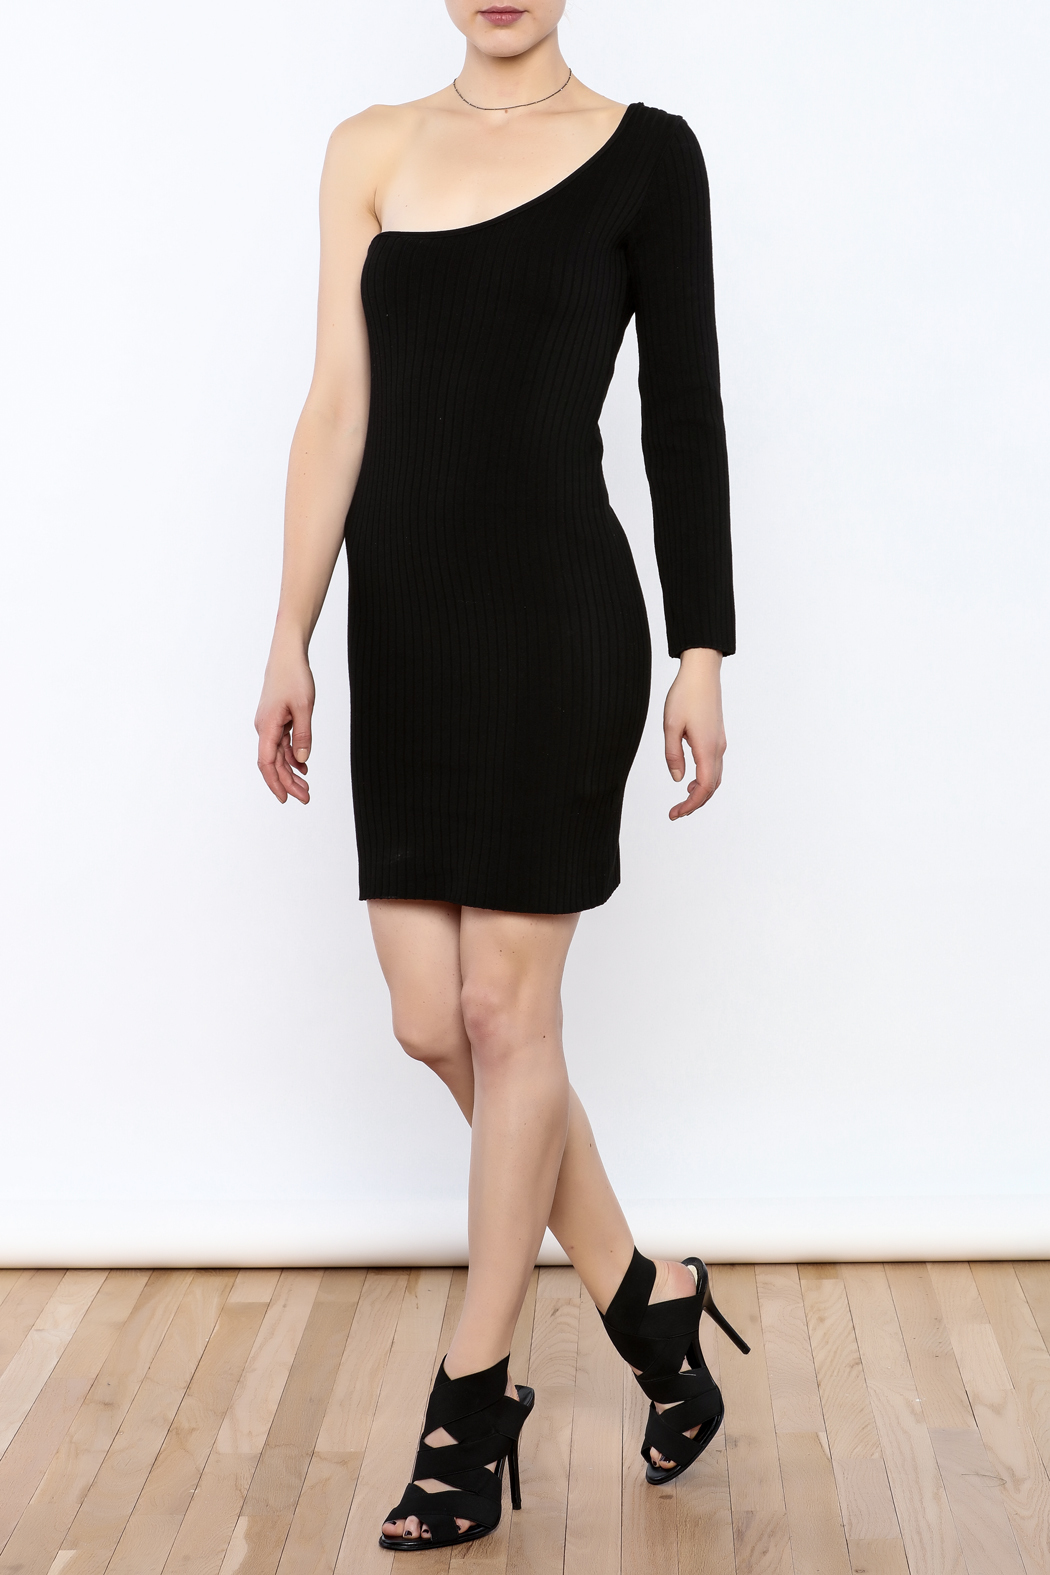 Cleo Black Knit Dress - Front Full Image